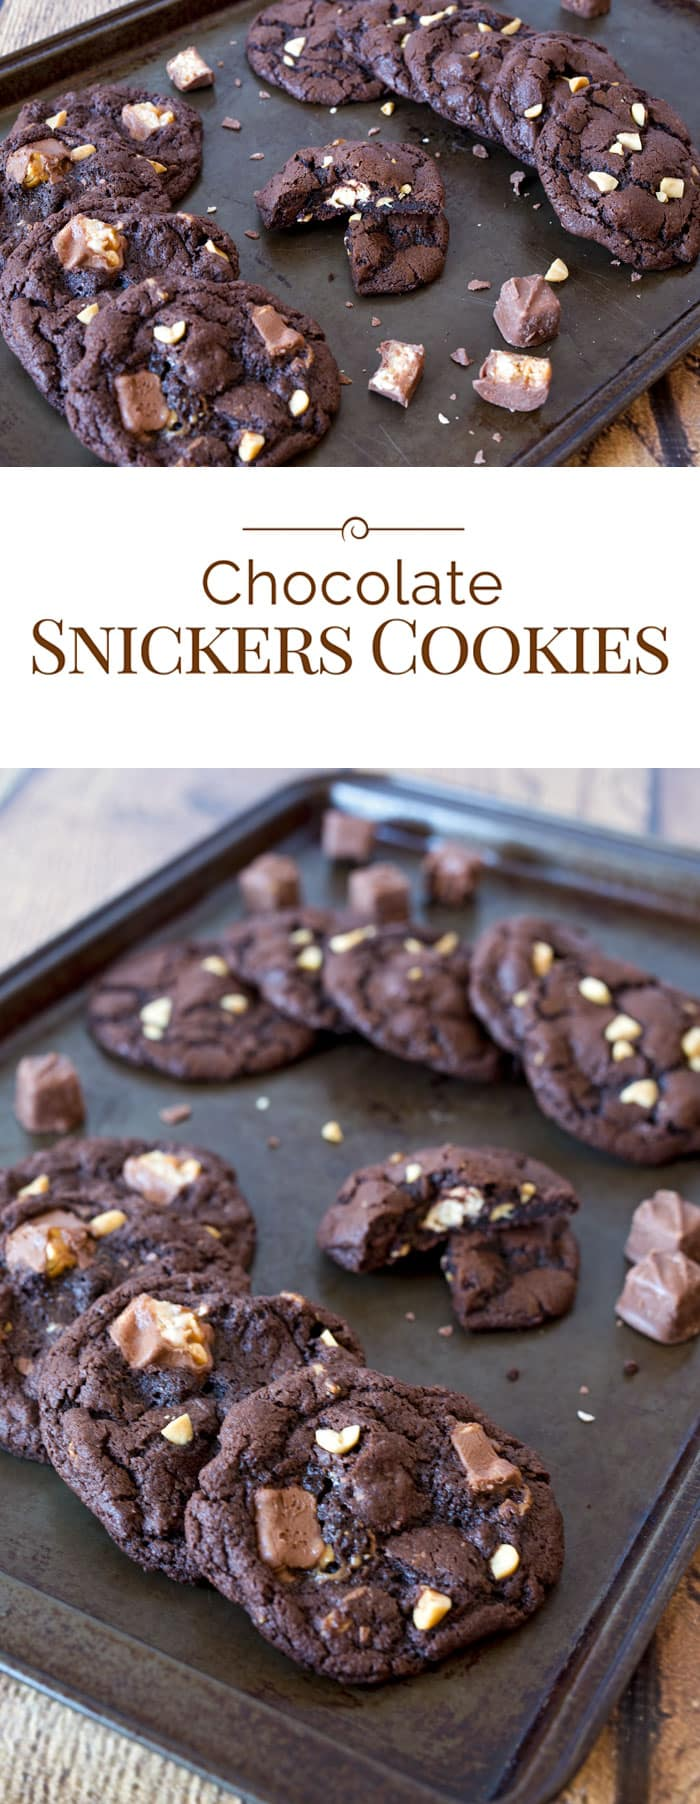 Chocolate-Snickers-Cookies-Collage-Barbara-Bakes